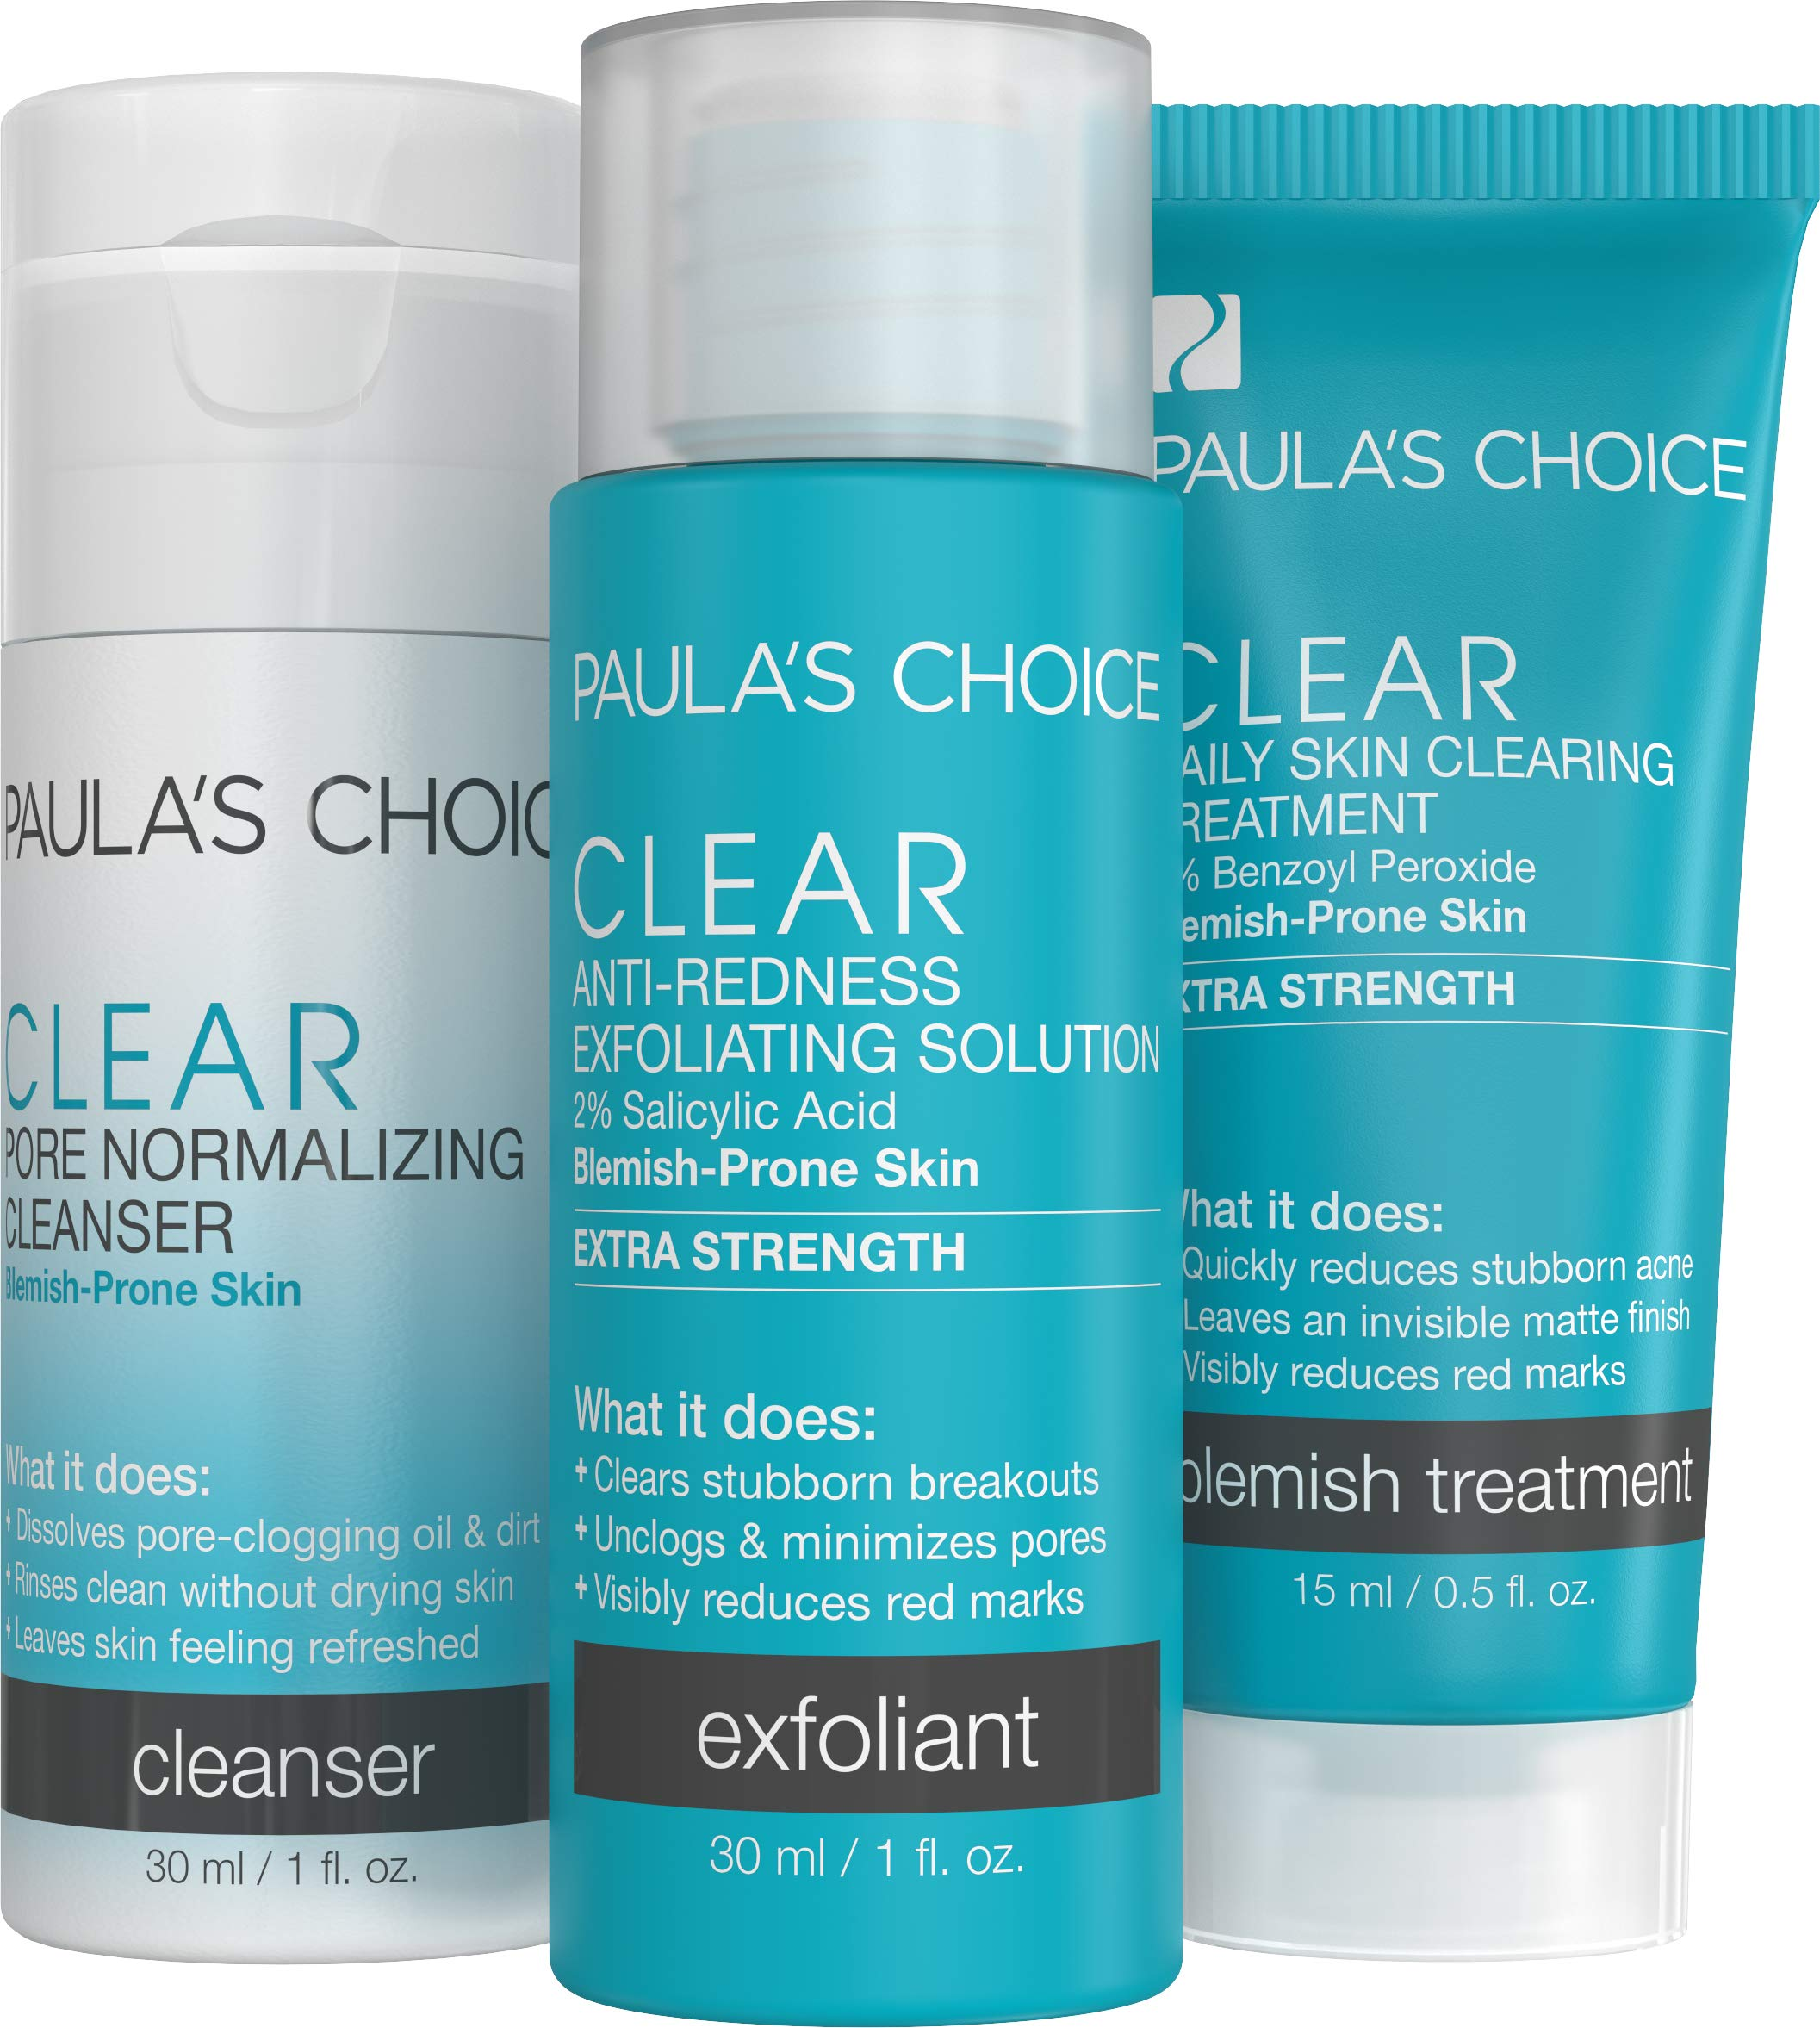 Paula's Choice CLEAR Extra Strength Acne Travel Kit, 2% Salicylic Acid & 5% Benzoyl Peroxide for Severe Acne, Redness Relief